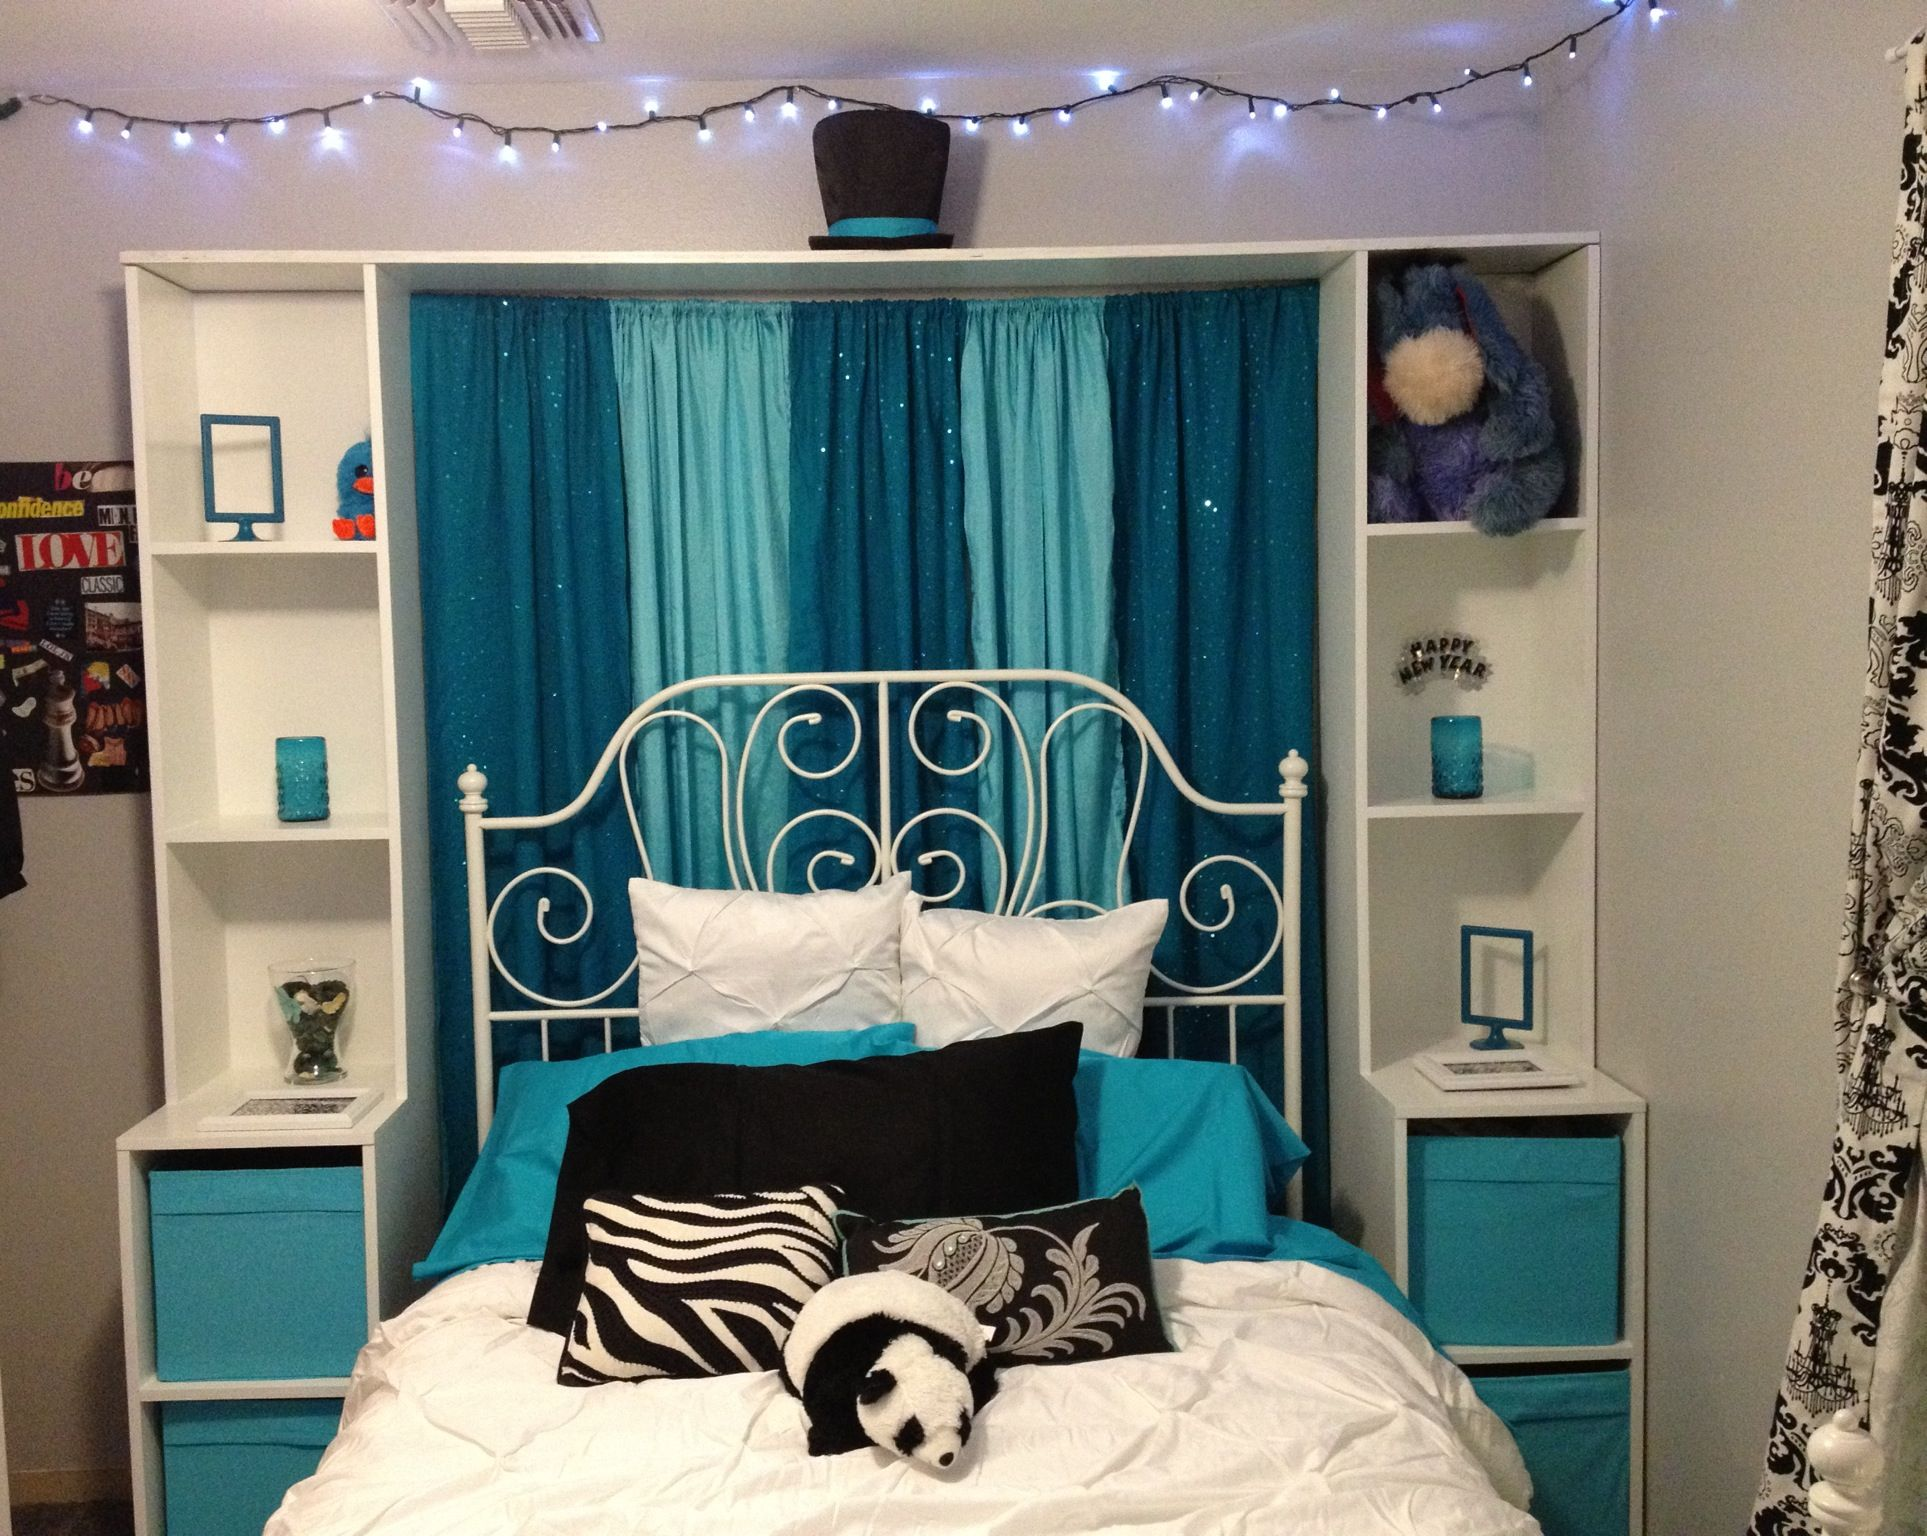 Teal and Aqua black and white bedroom redo for my 14 year old So